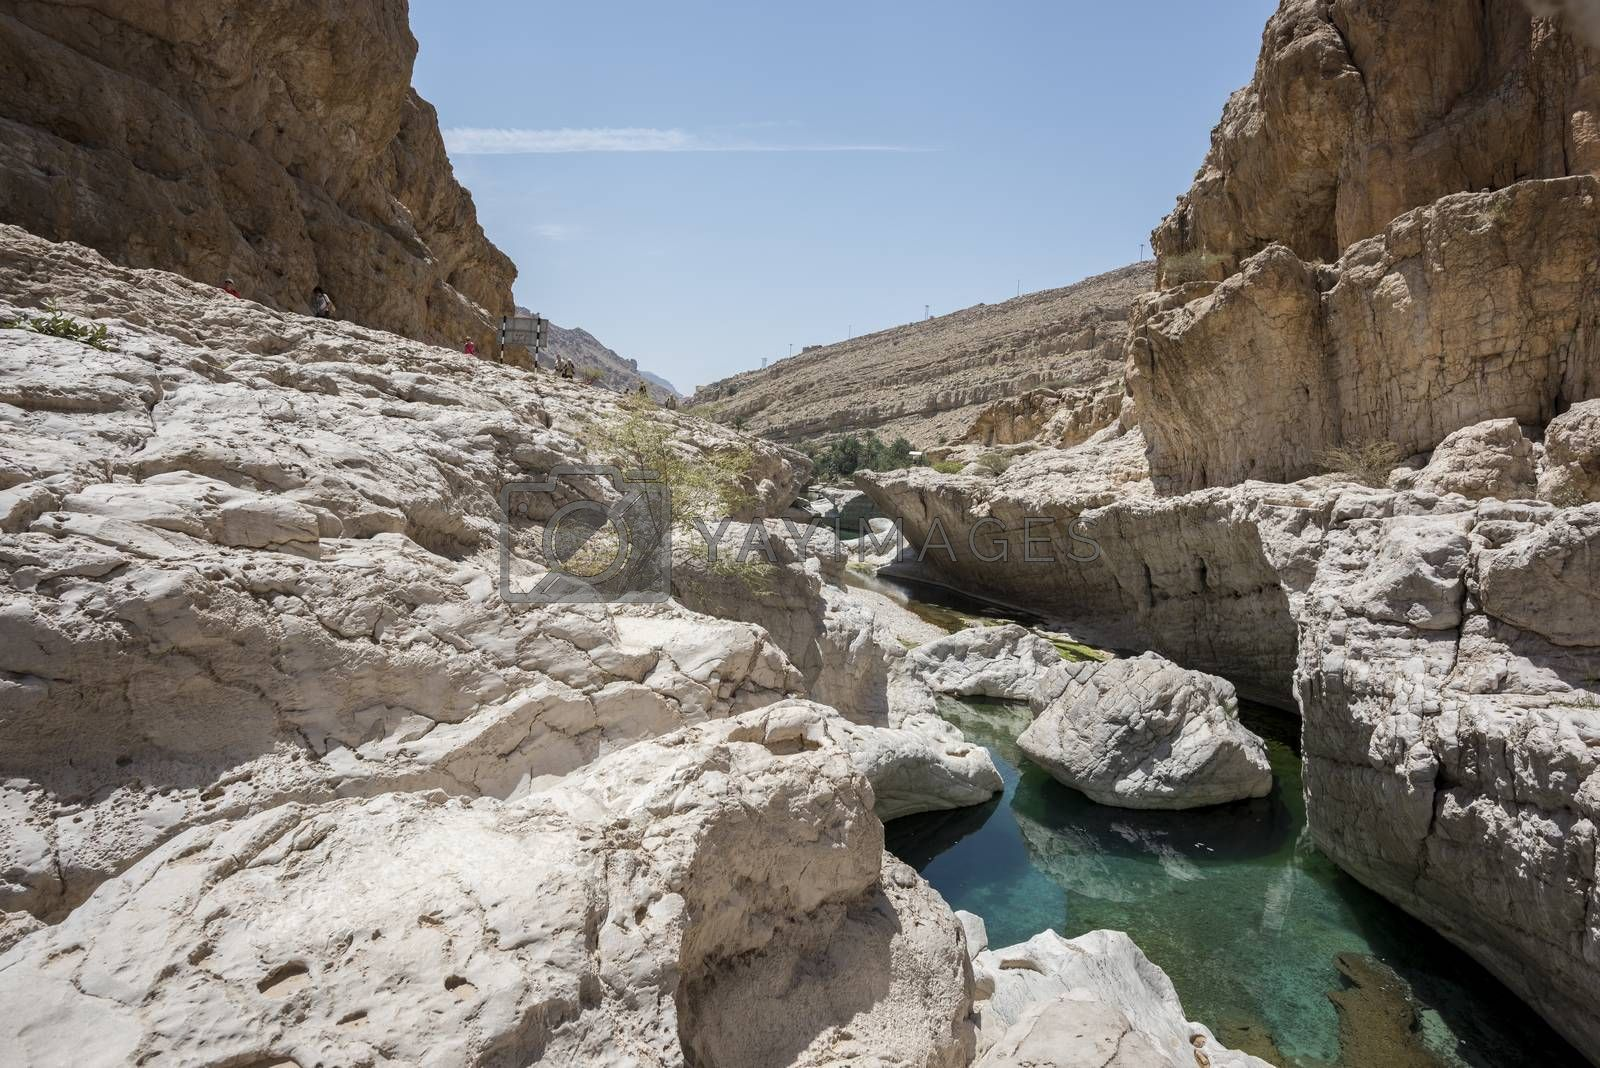 tourist beside the river (with turquoise water) and pool in the canyon of Wadi Bani Khalid, Sultanate of Oman